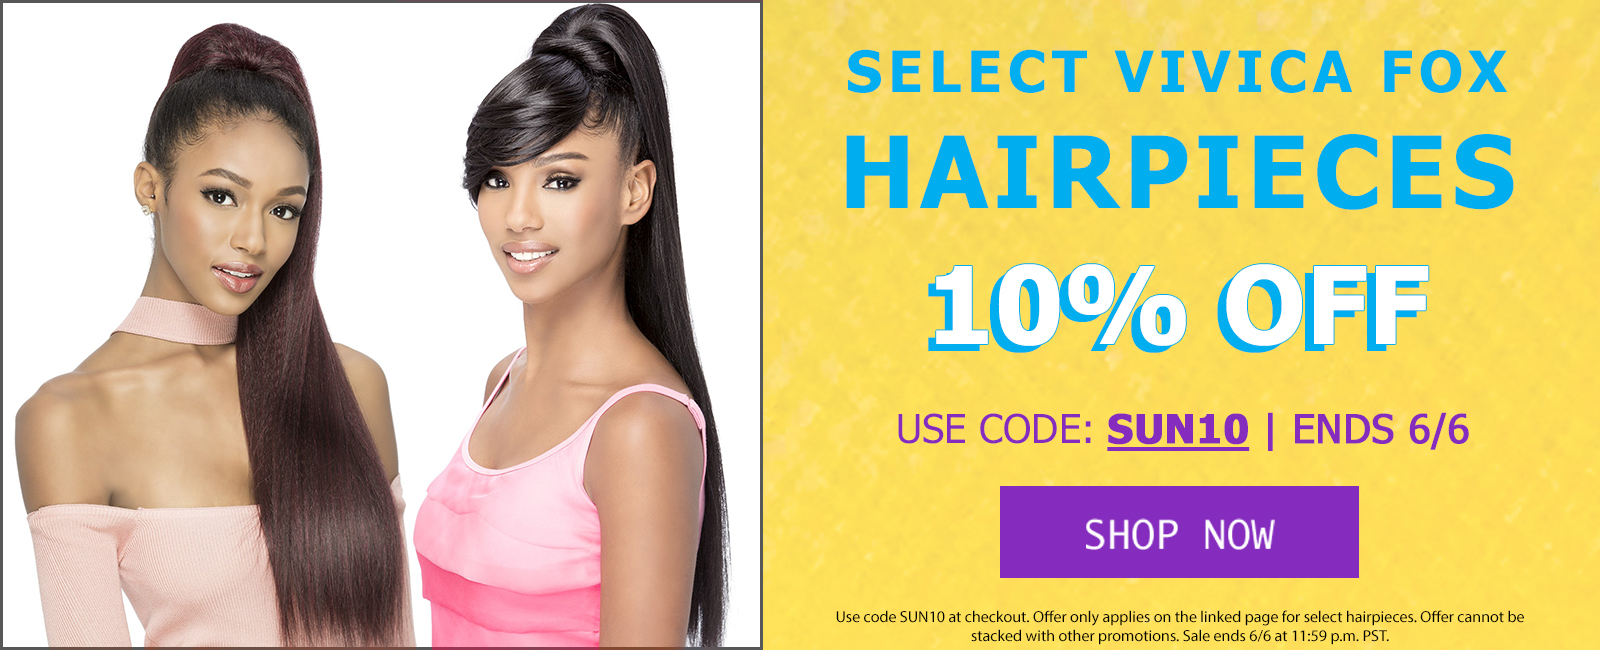 2020-06-01-10-off-vf-hairpieces-mobile